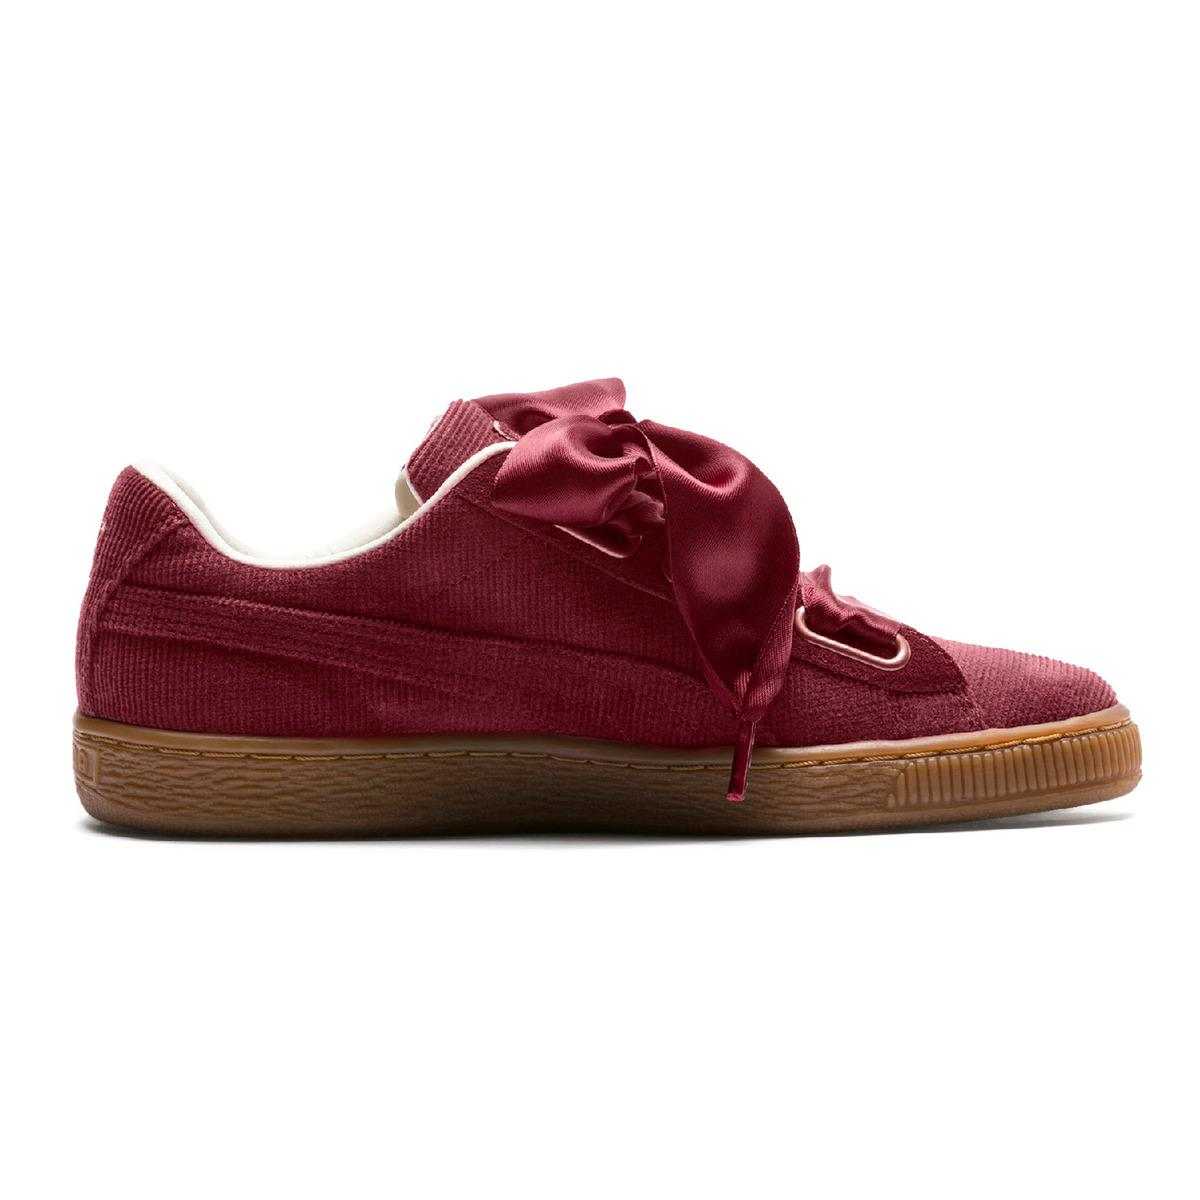 bfdf794f591f6c Lyst - PUMA Basket Heart Corduroy Casual Trainers in Red - Save 5%